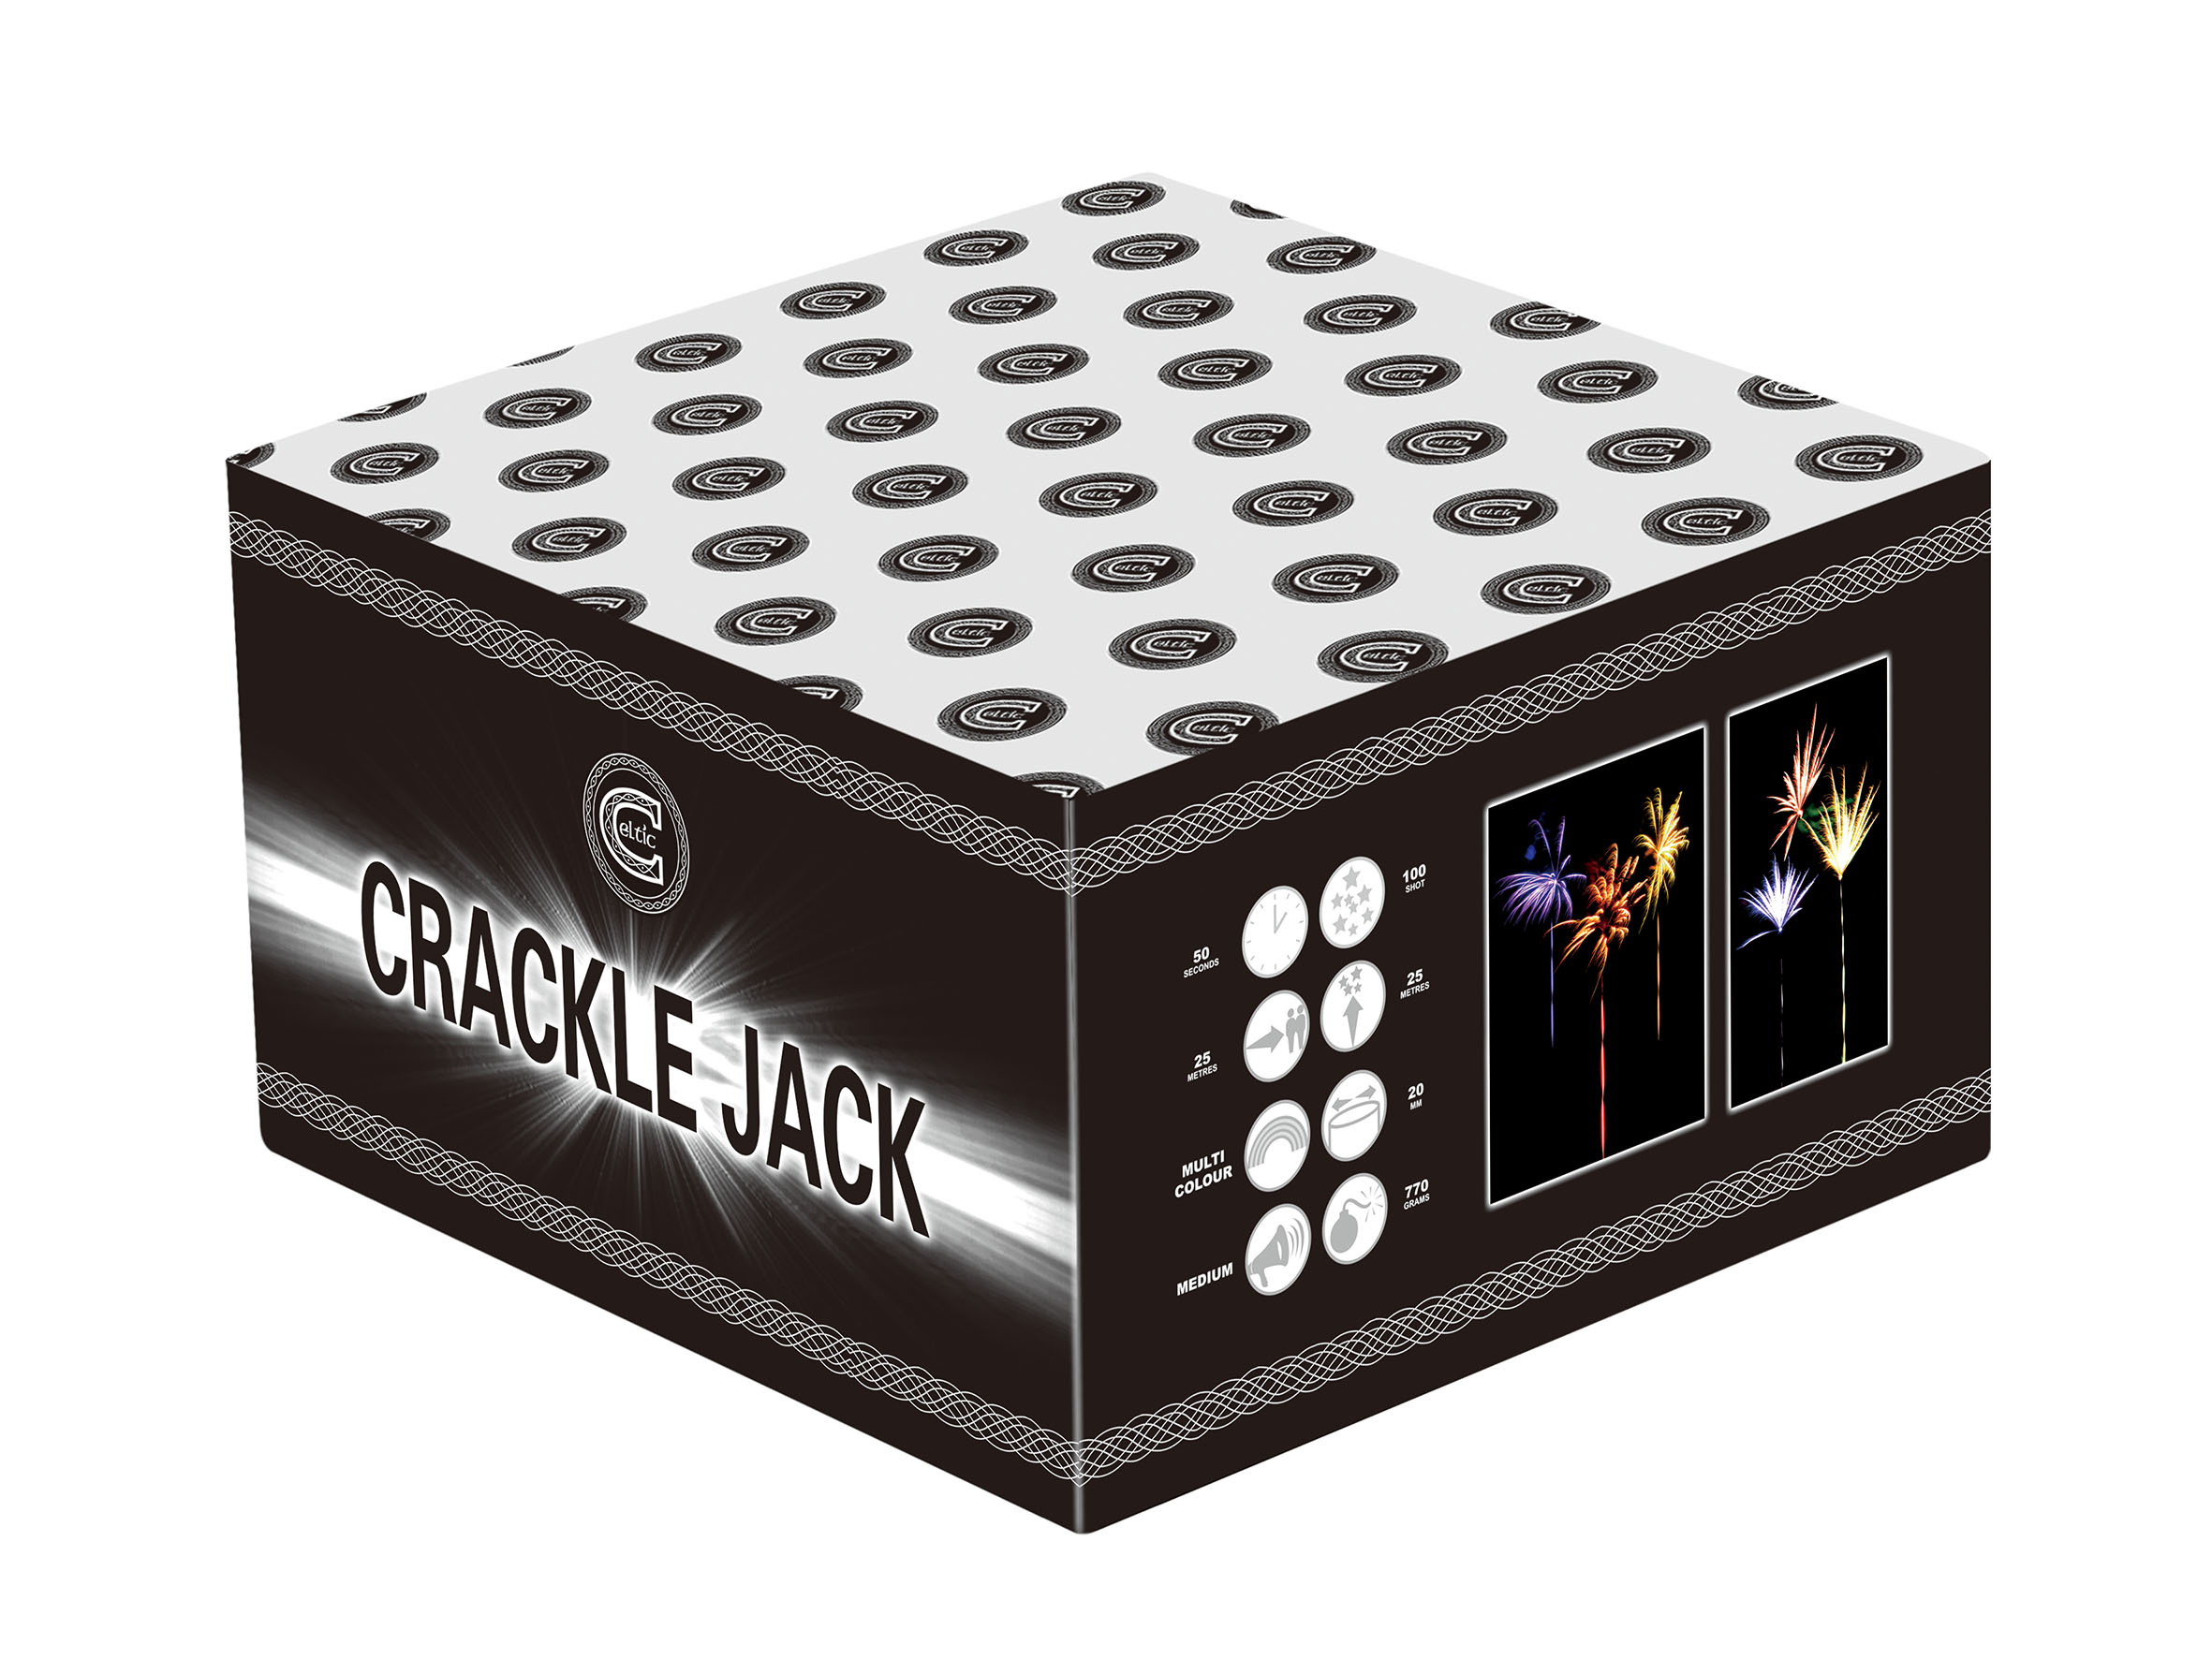 Crackle Jack By Celtic Fireworks